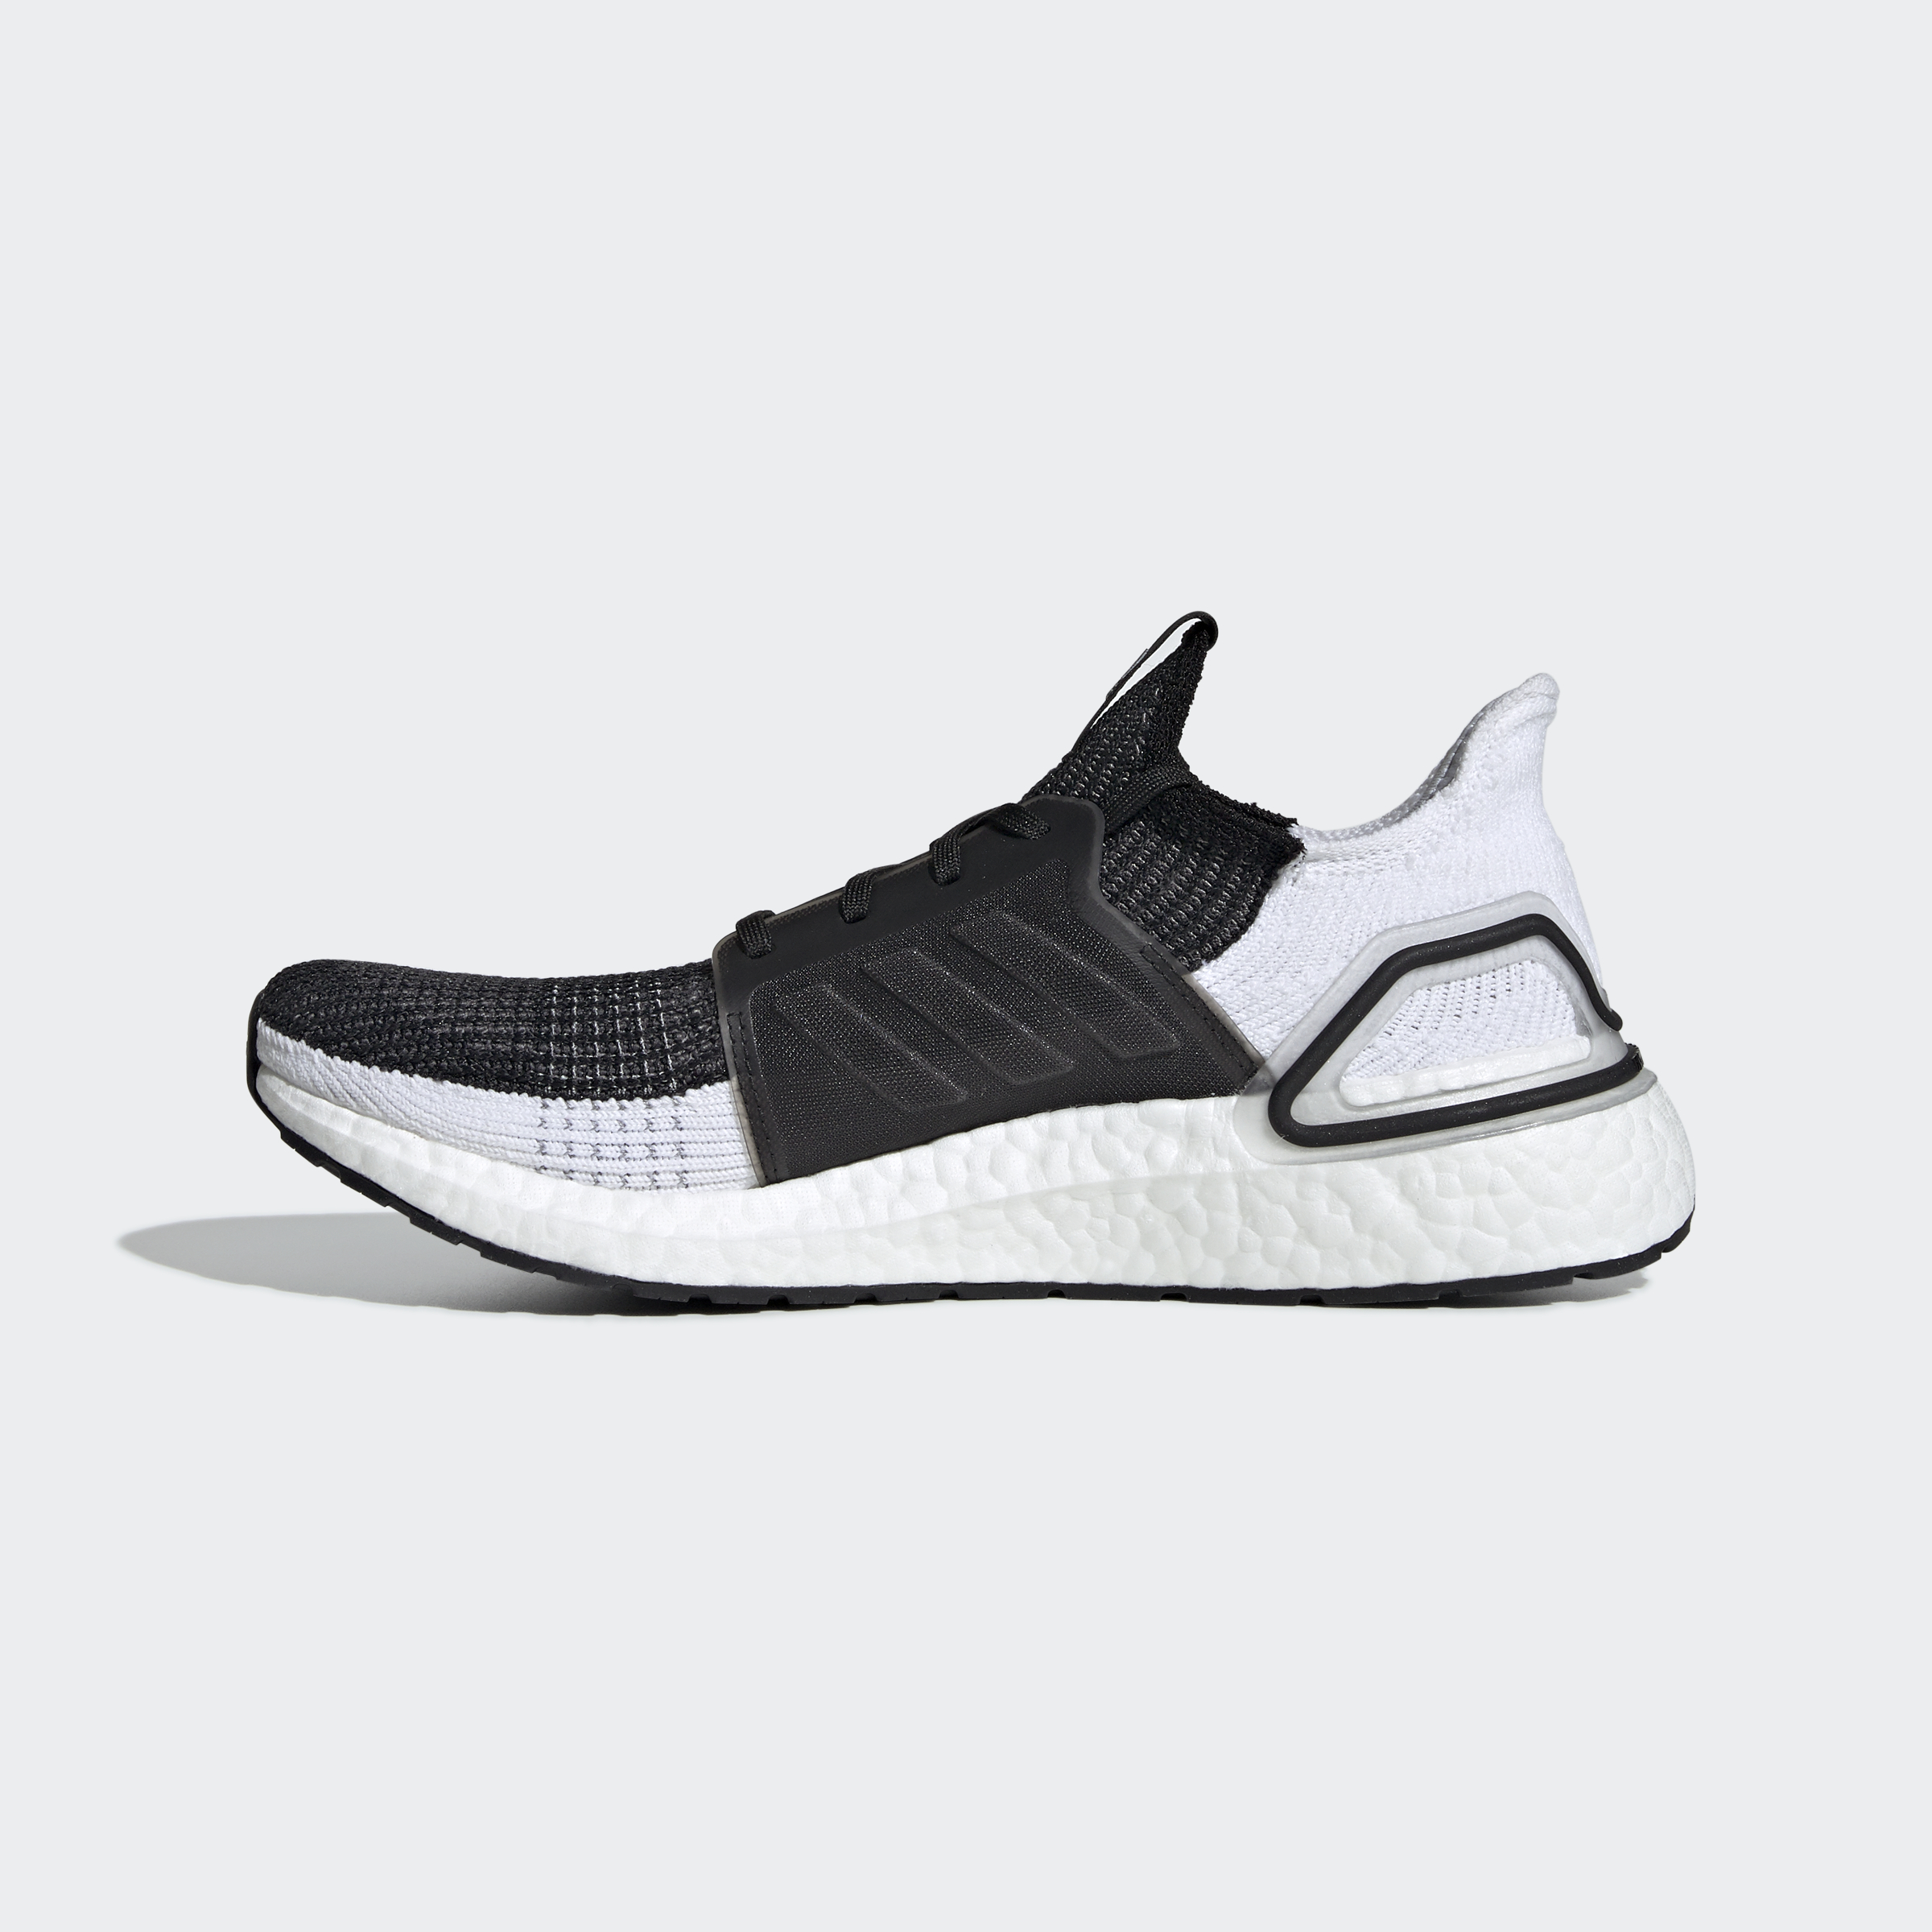 adidas-Ultraboost-19-Shoes-Athletic-amp-Sneakers thumbnail 11